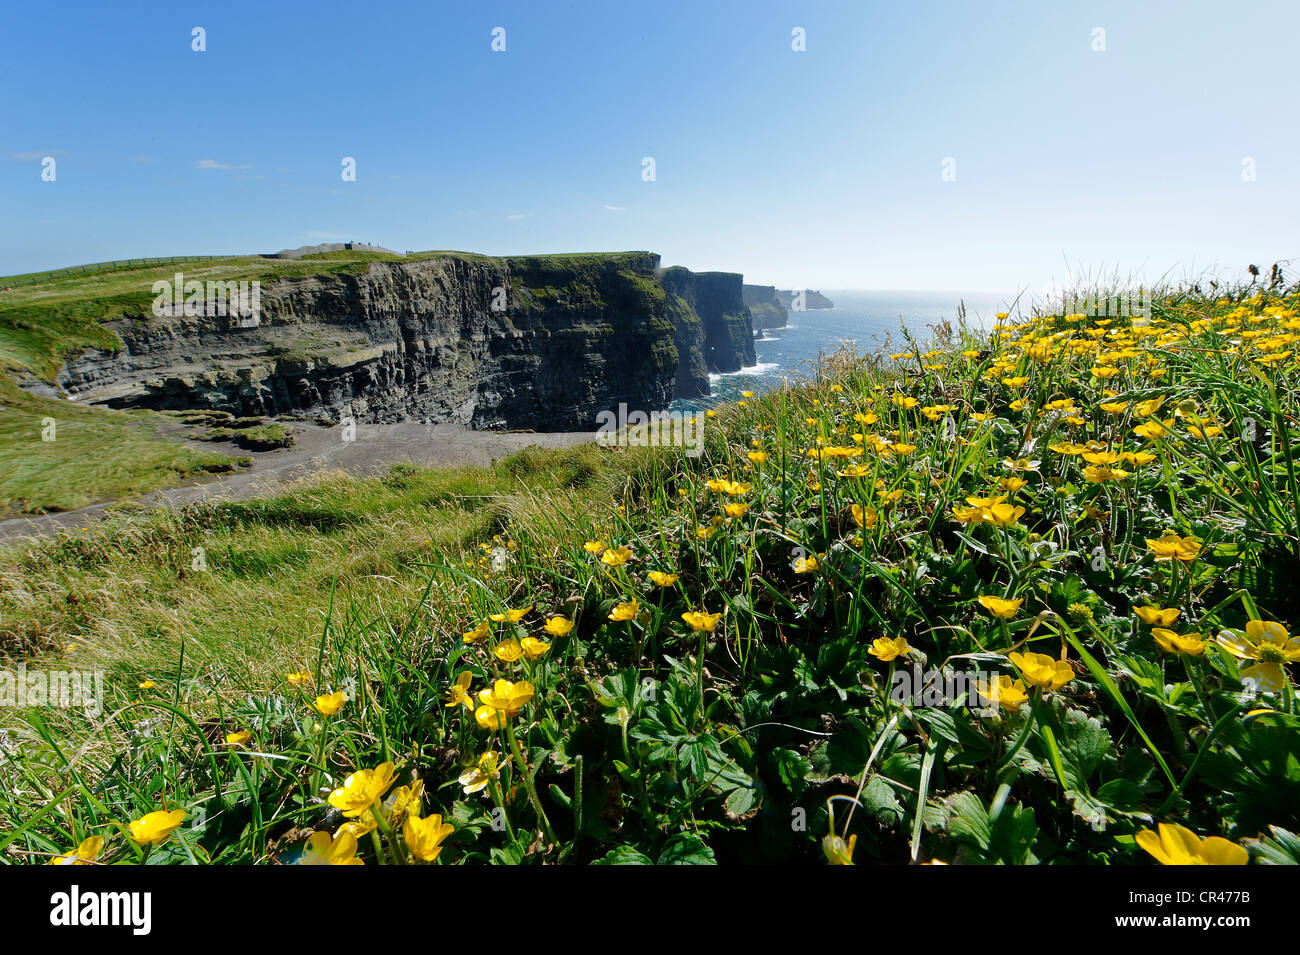 Cliffs of Moher, County Clare, Ireland, Europe - Stock Image